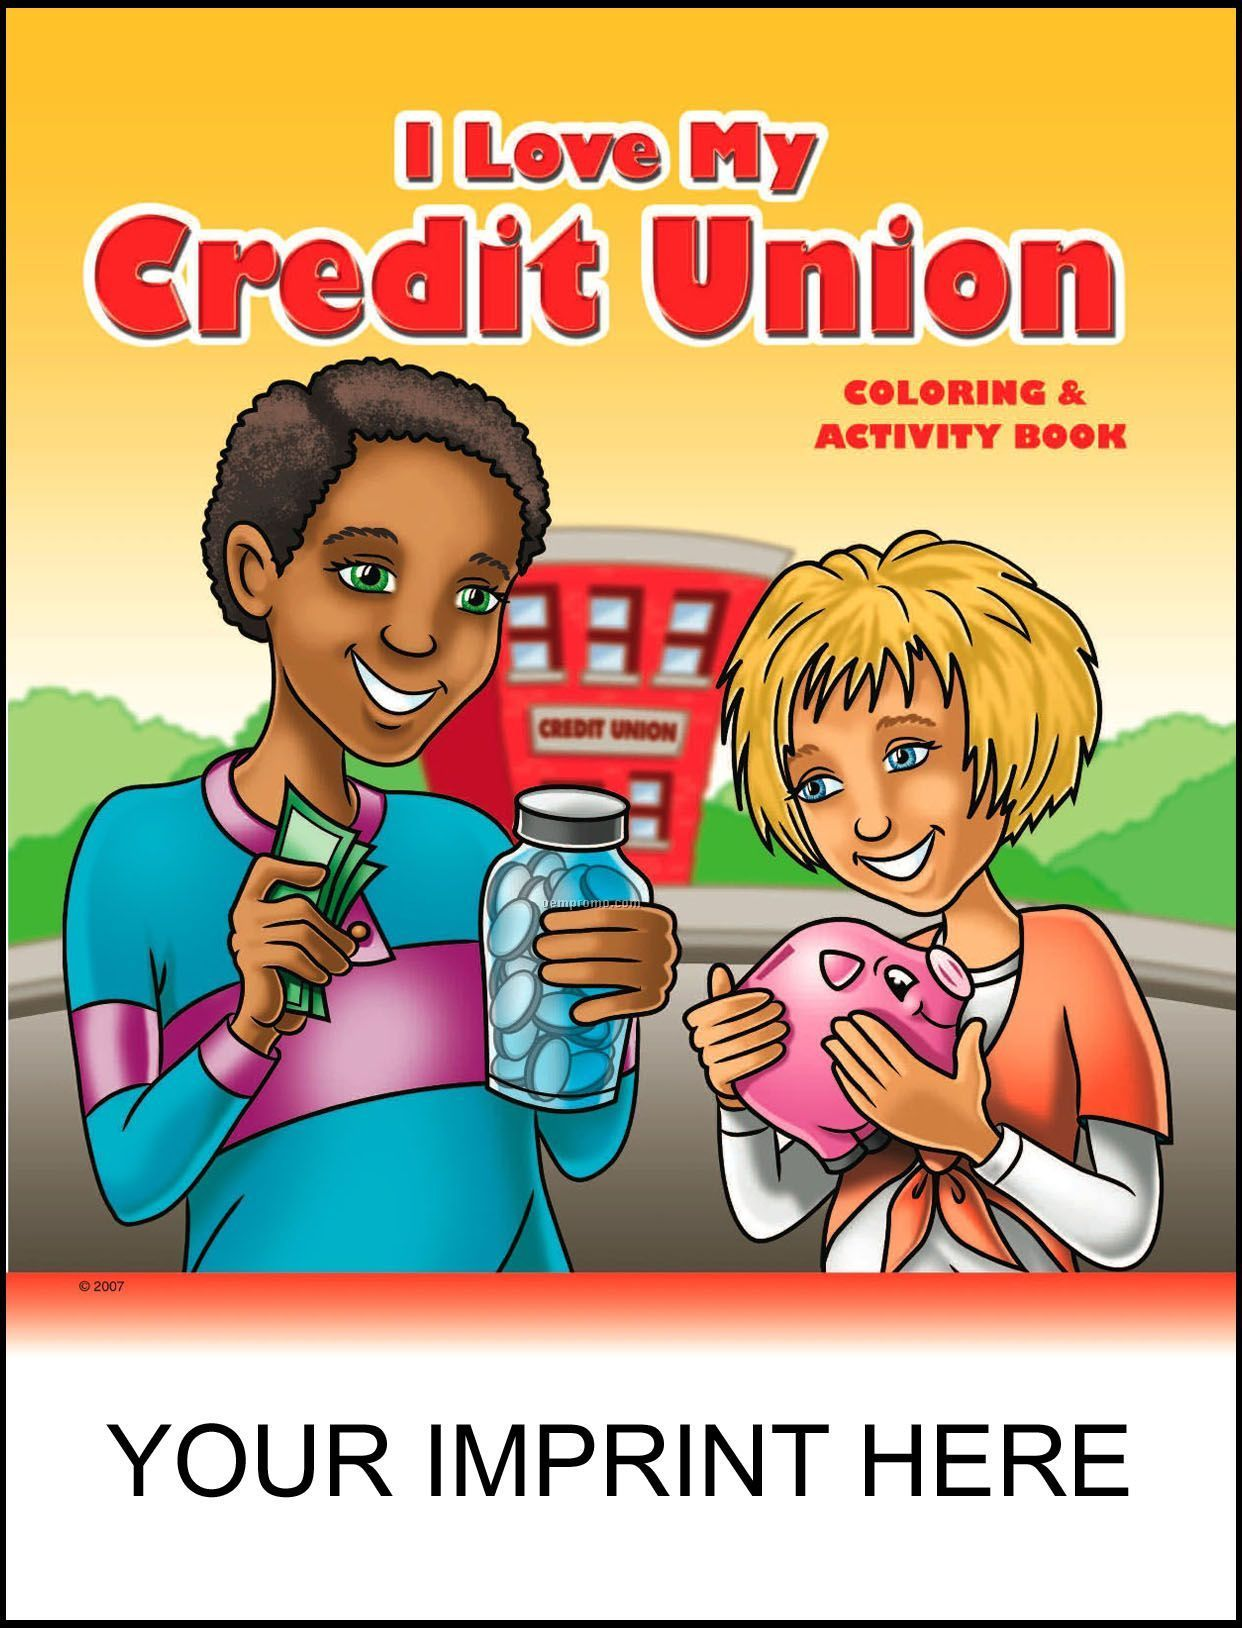 I Love My Credit Union Coloring & Activity Book